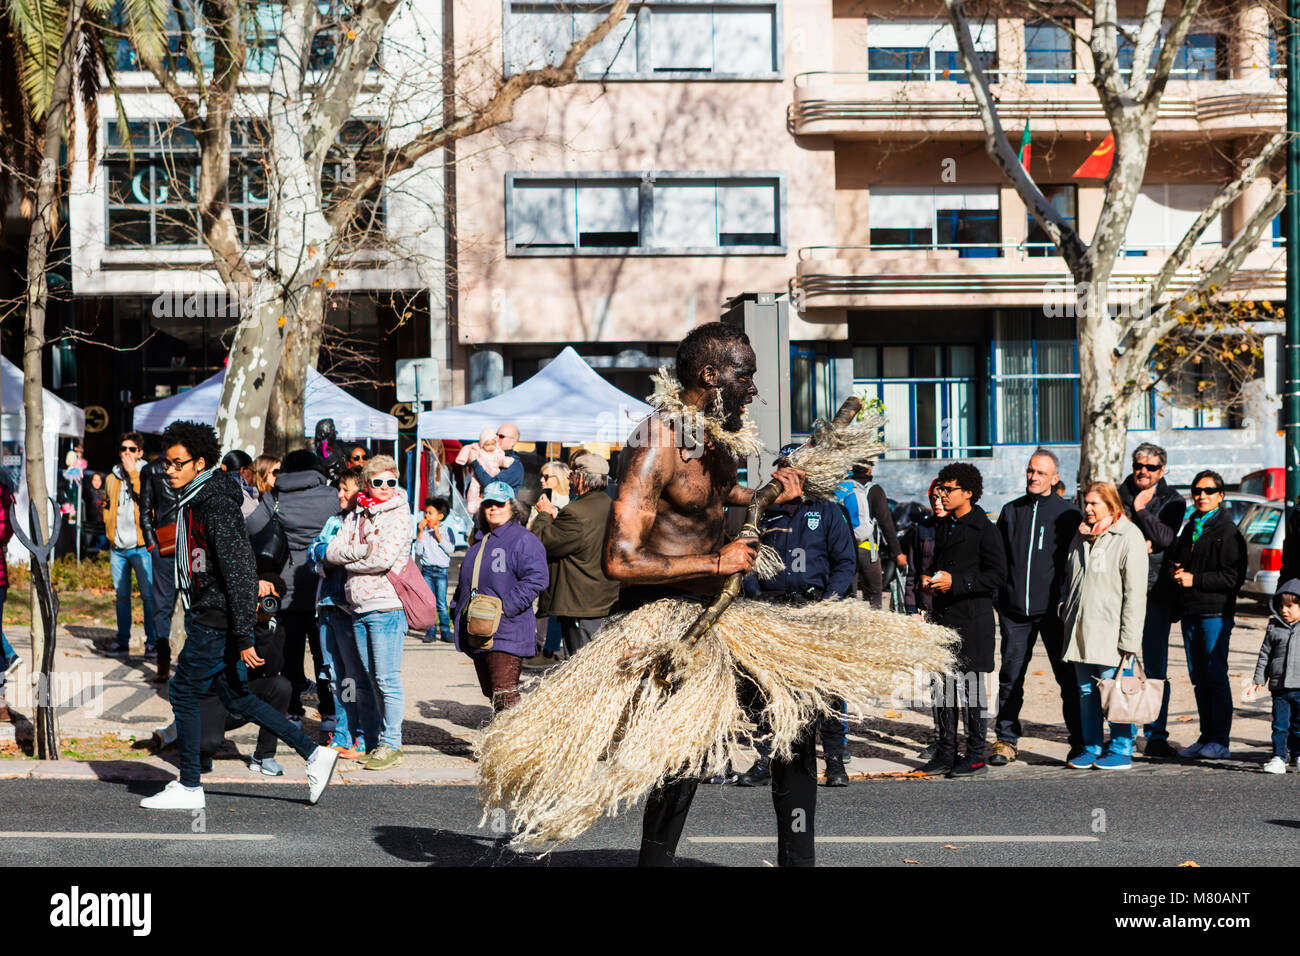 African dancer in costume at a procession on the Av. da Liberdade in Lisbon. - Stock Image